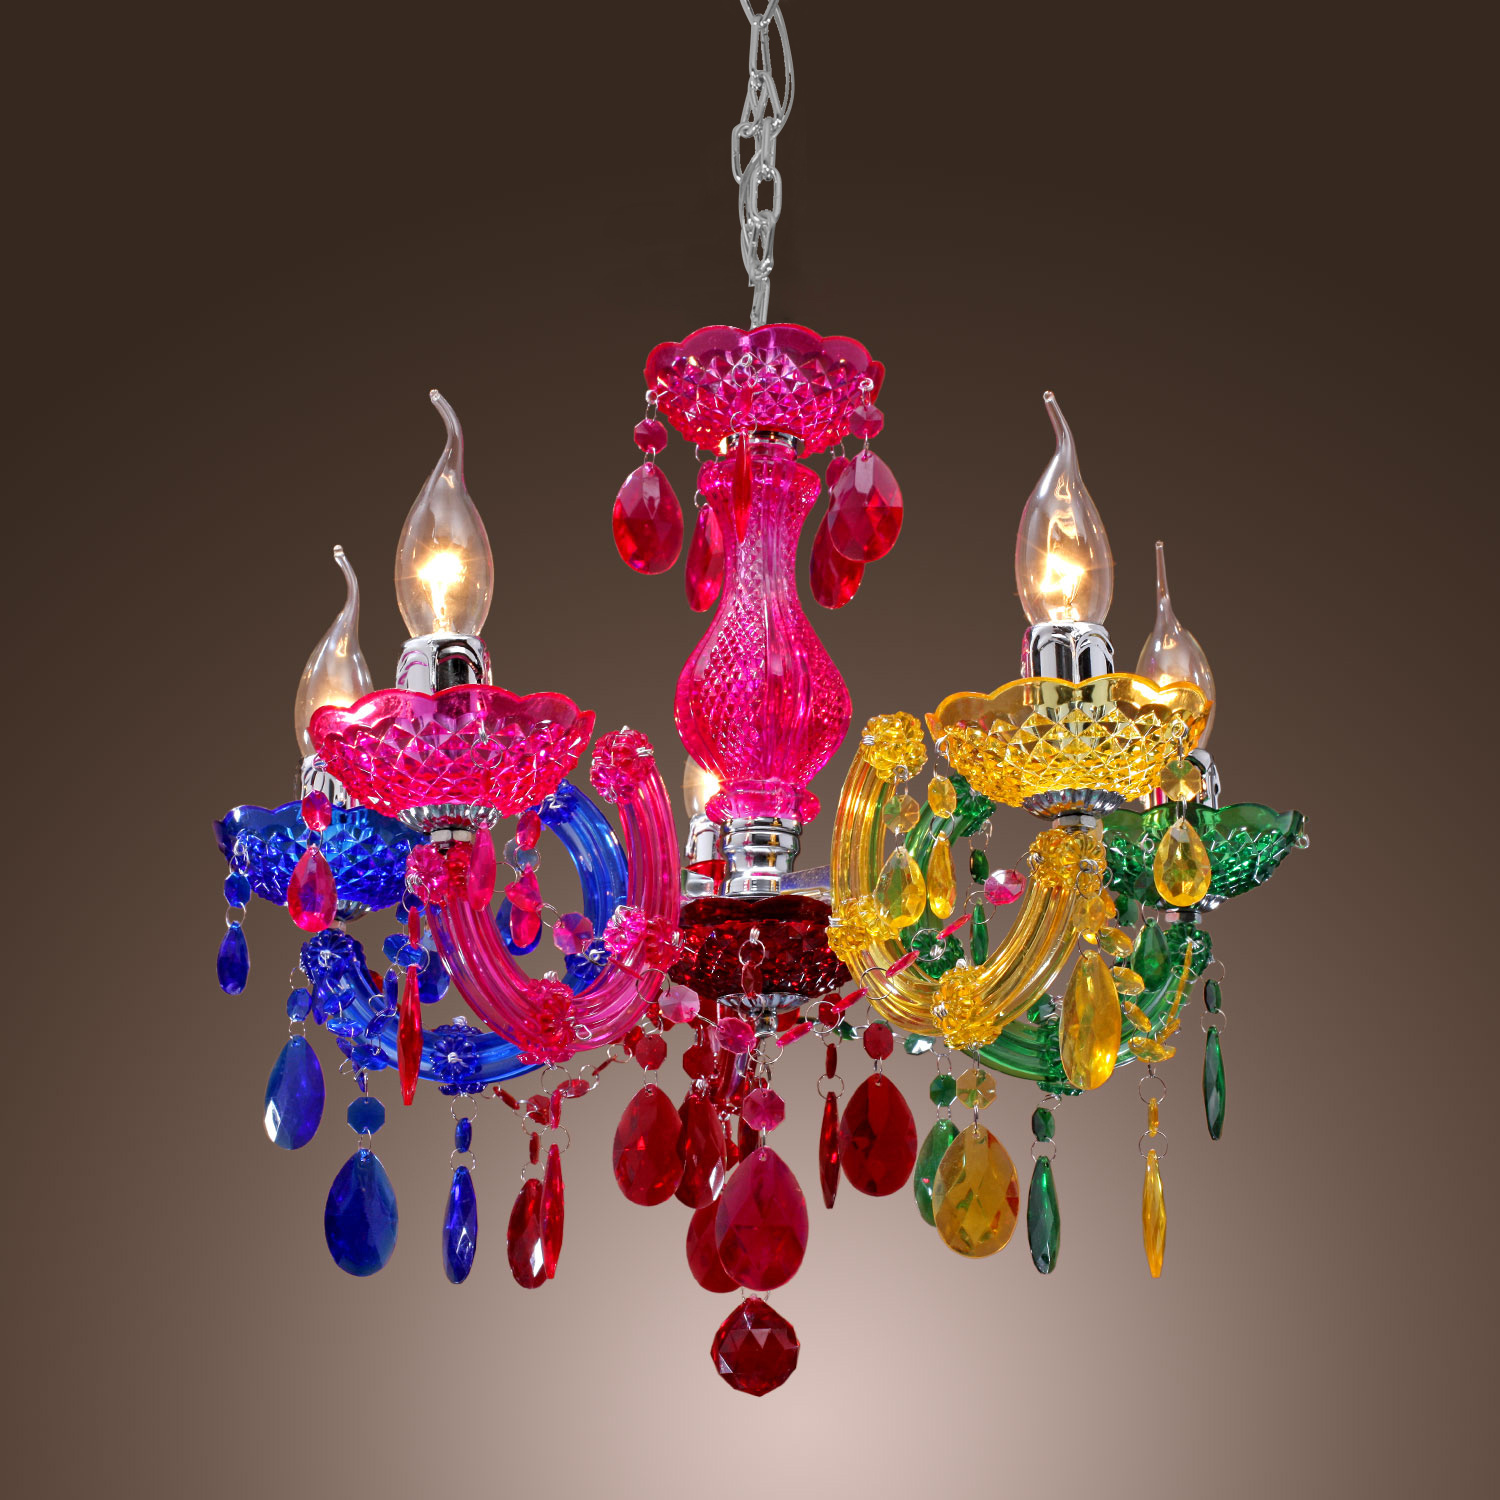 Colorful Rainbow Classic Vintage Artistic Crystal Ceiling